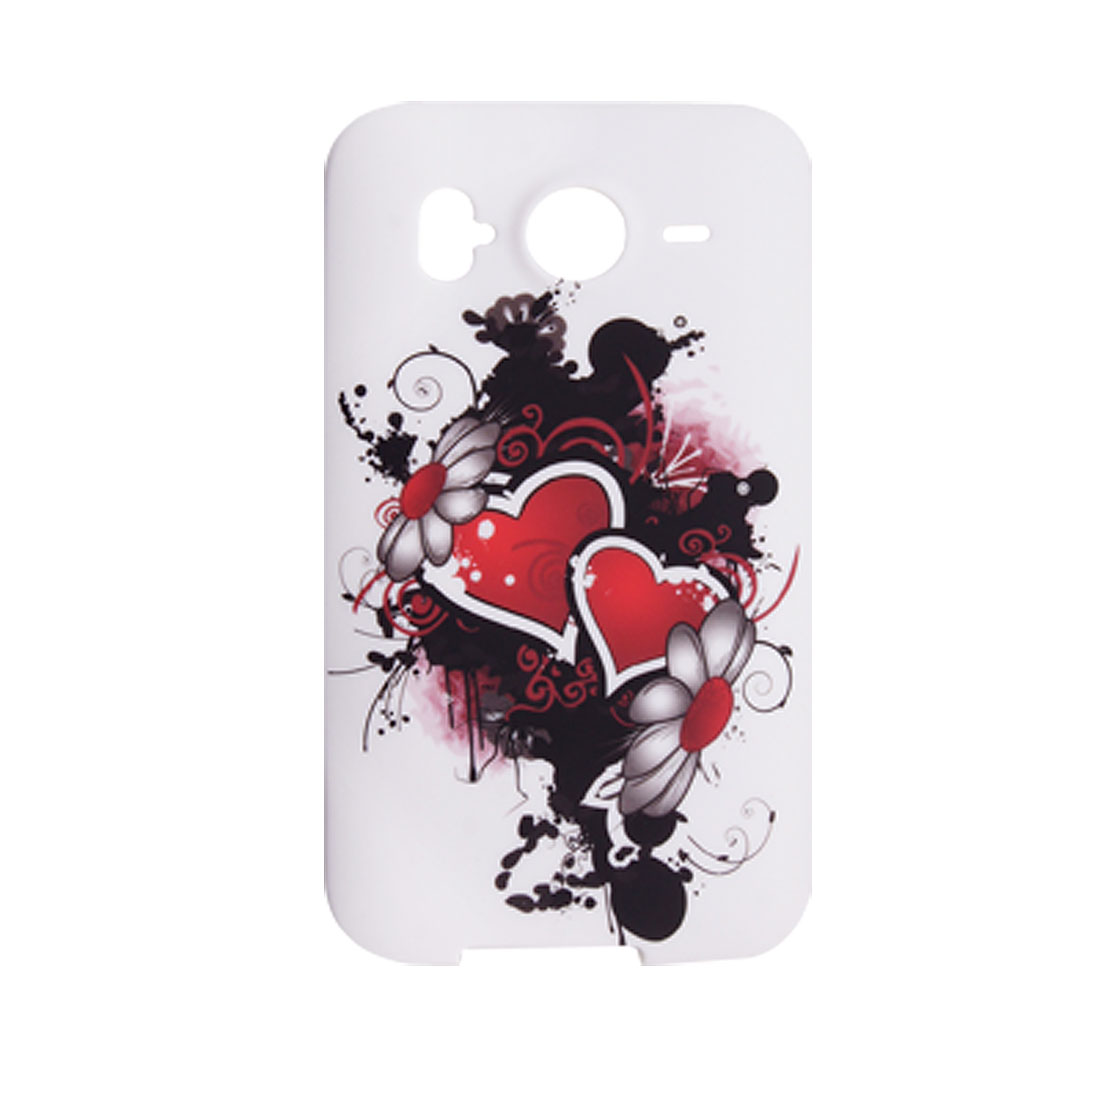 Heart Flowers Painting Design Soft Plastic Case for HTC Desire HD